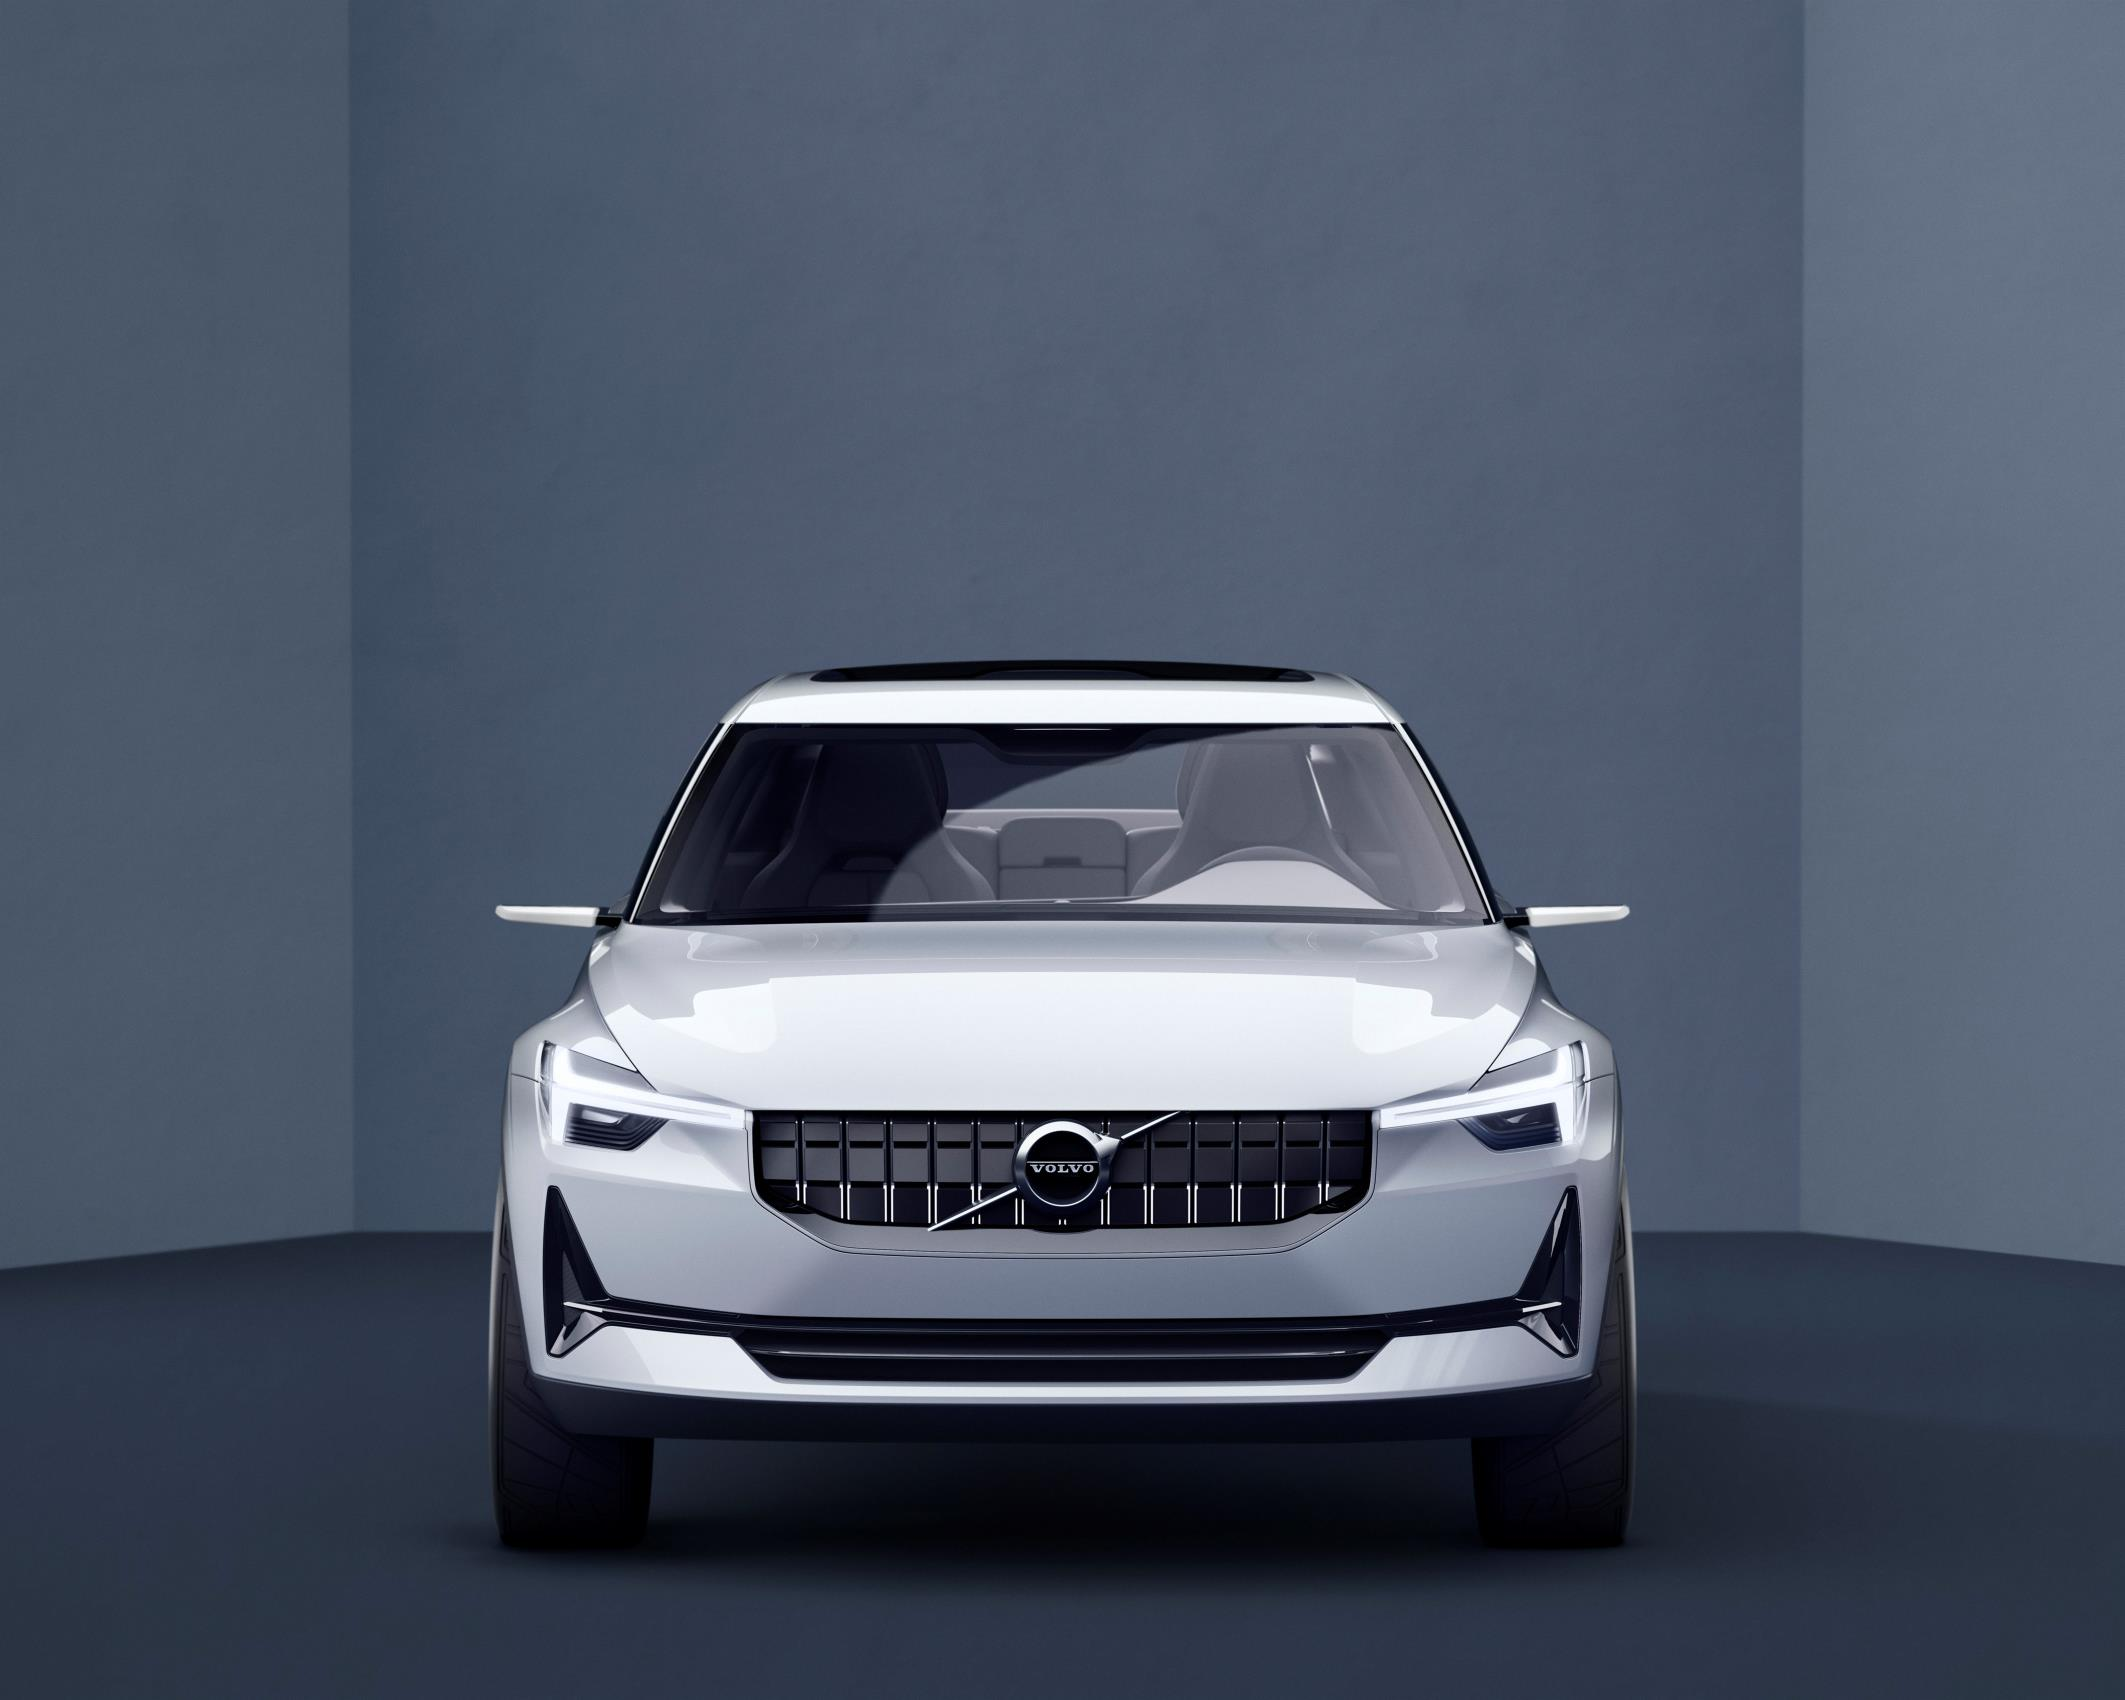 190844_Volvo_Concept_40_2_front